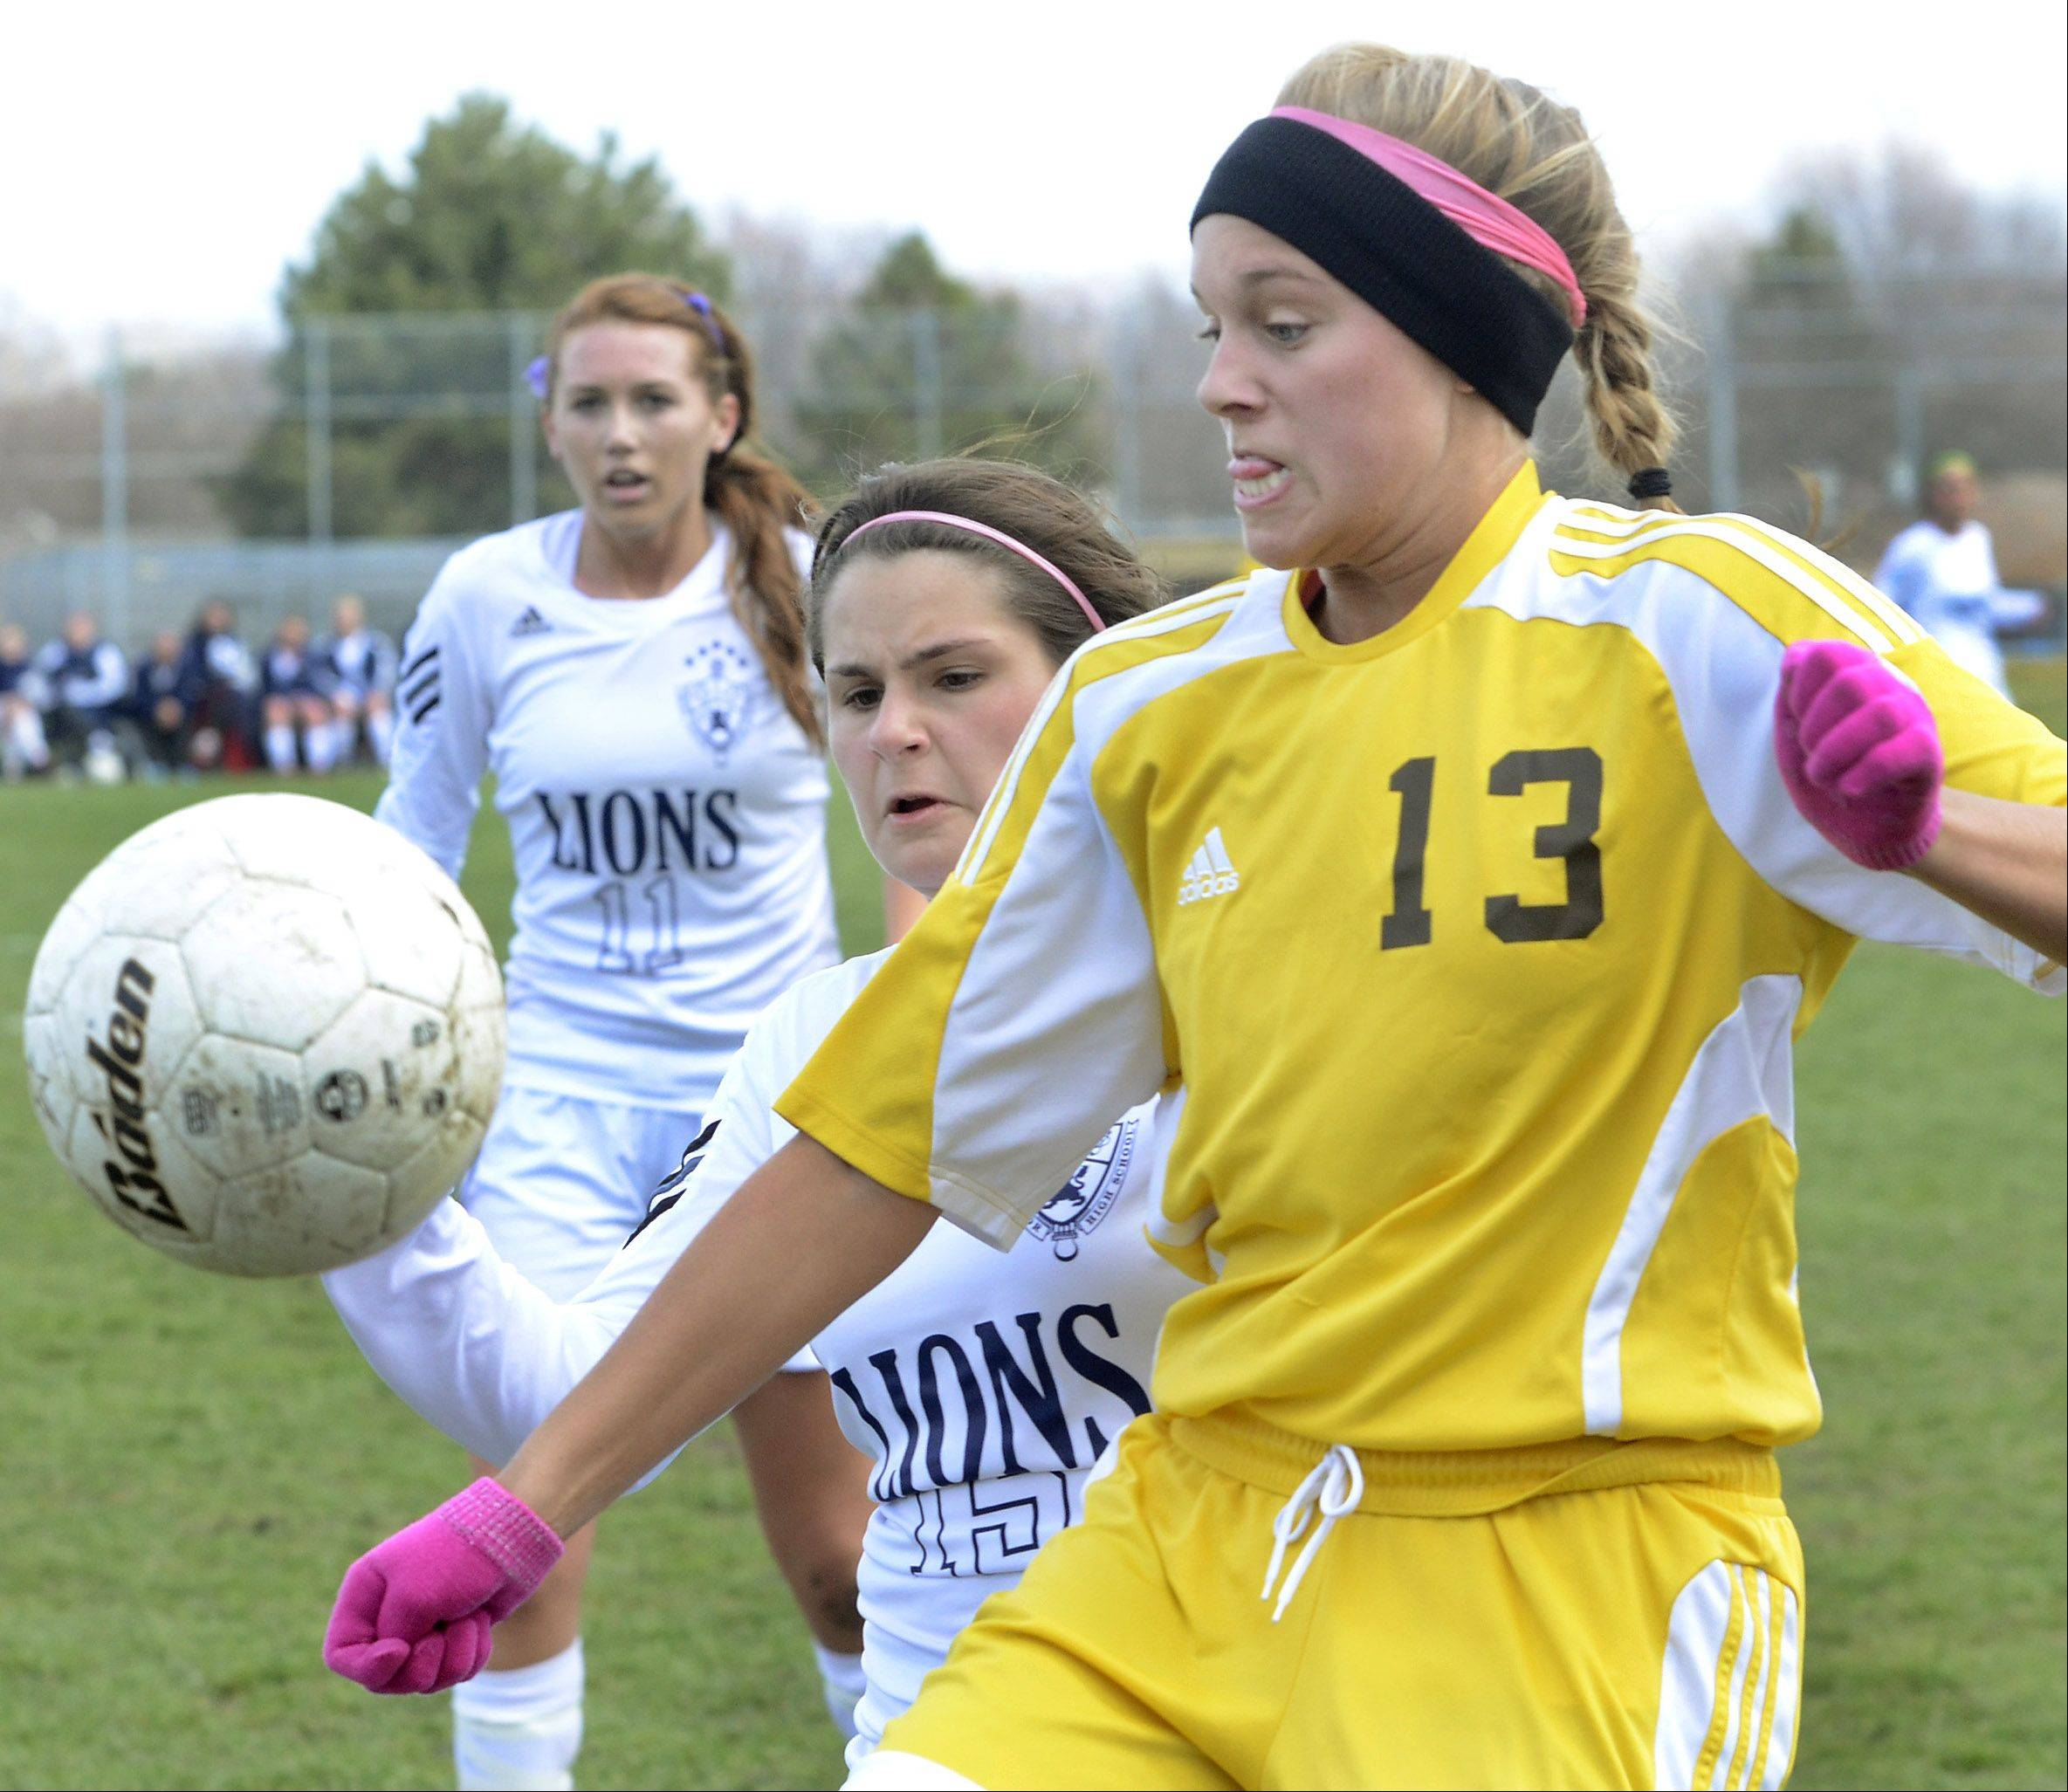 Carmel's Elizabeth Bream tries to keep the ball away from St. Viator's Emily Zahrebelski on Saturday in Arlington Heights.